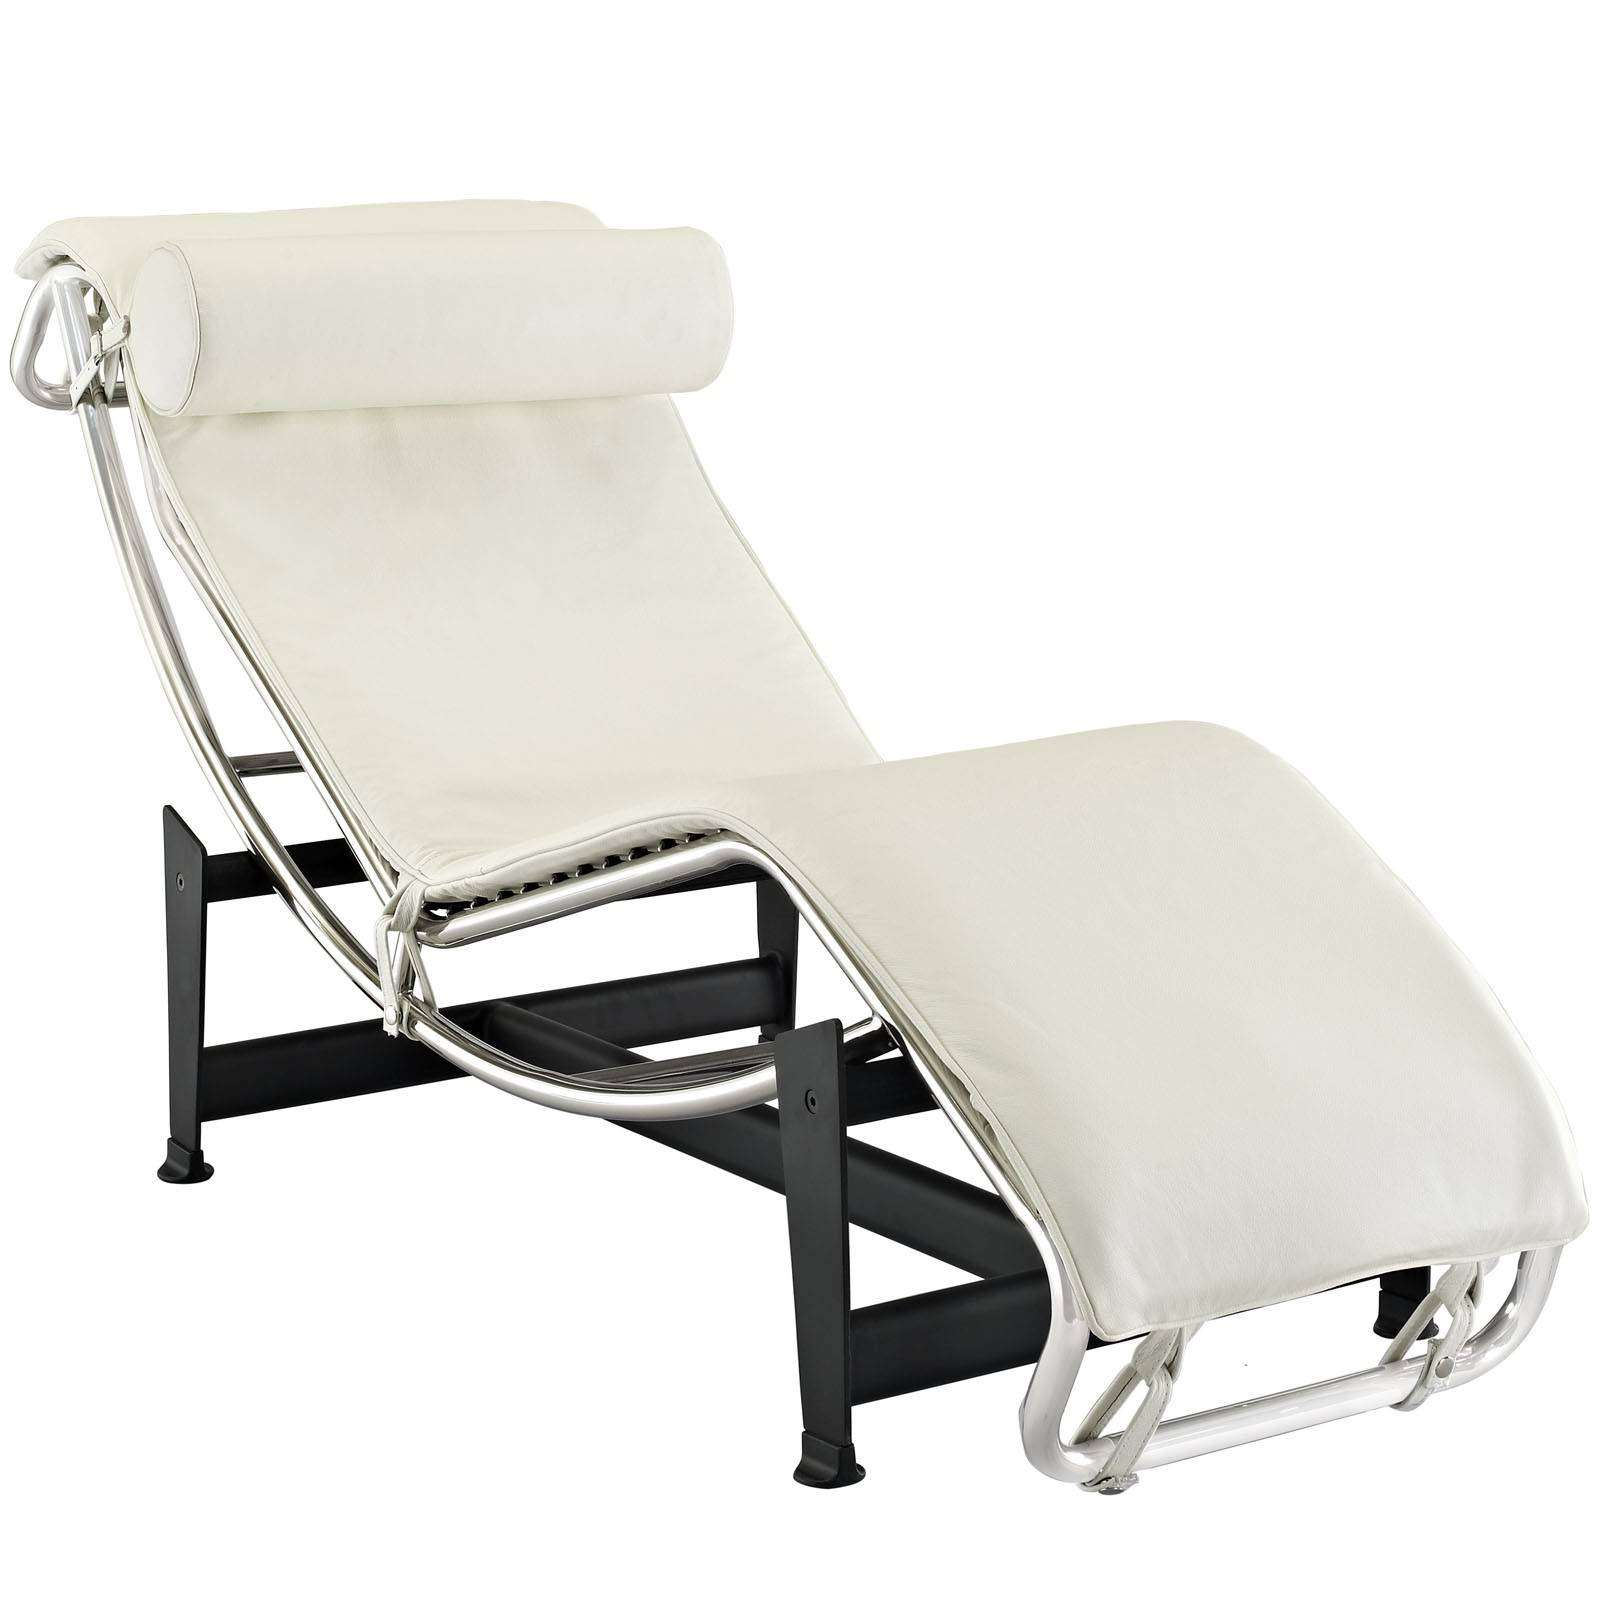 to of chair med way art lounge posters leather clean chaise image grey